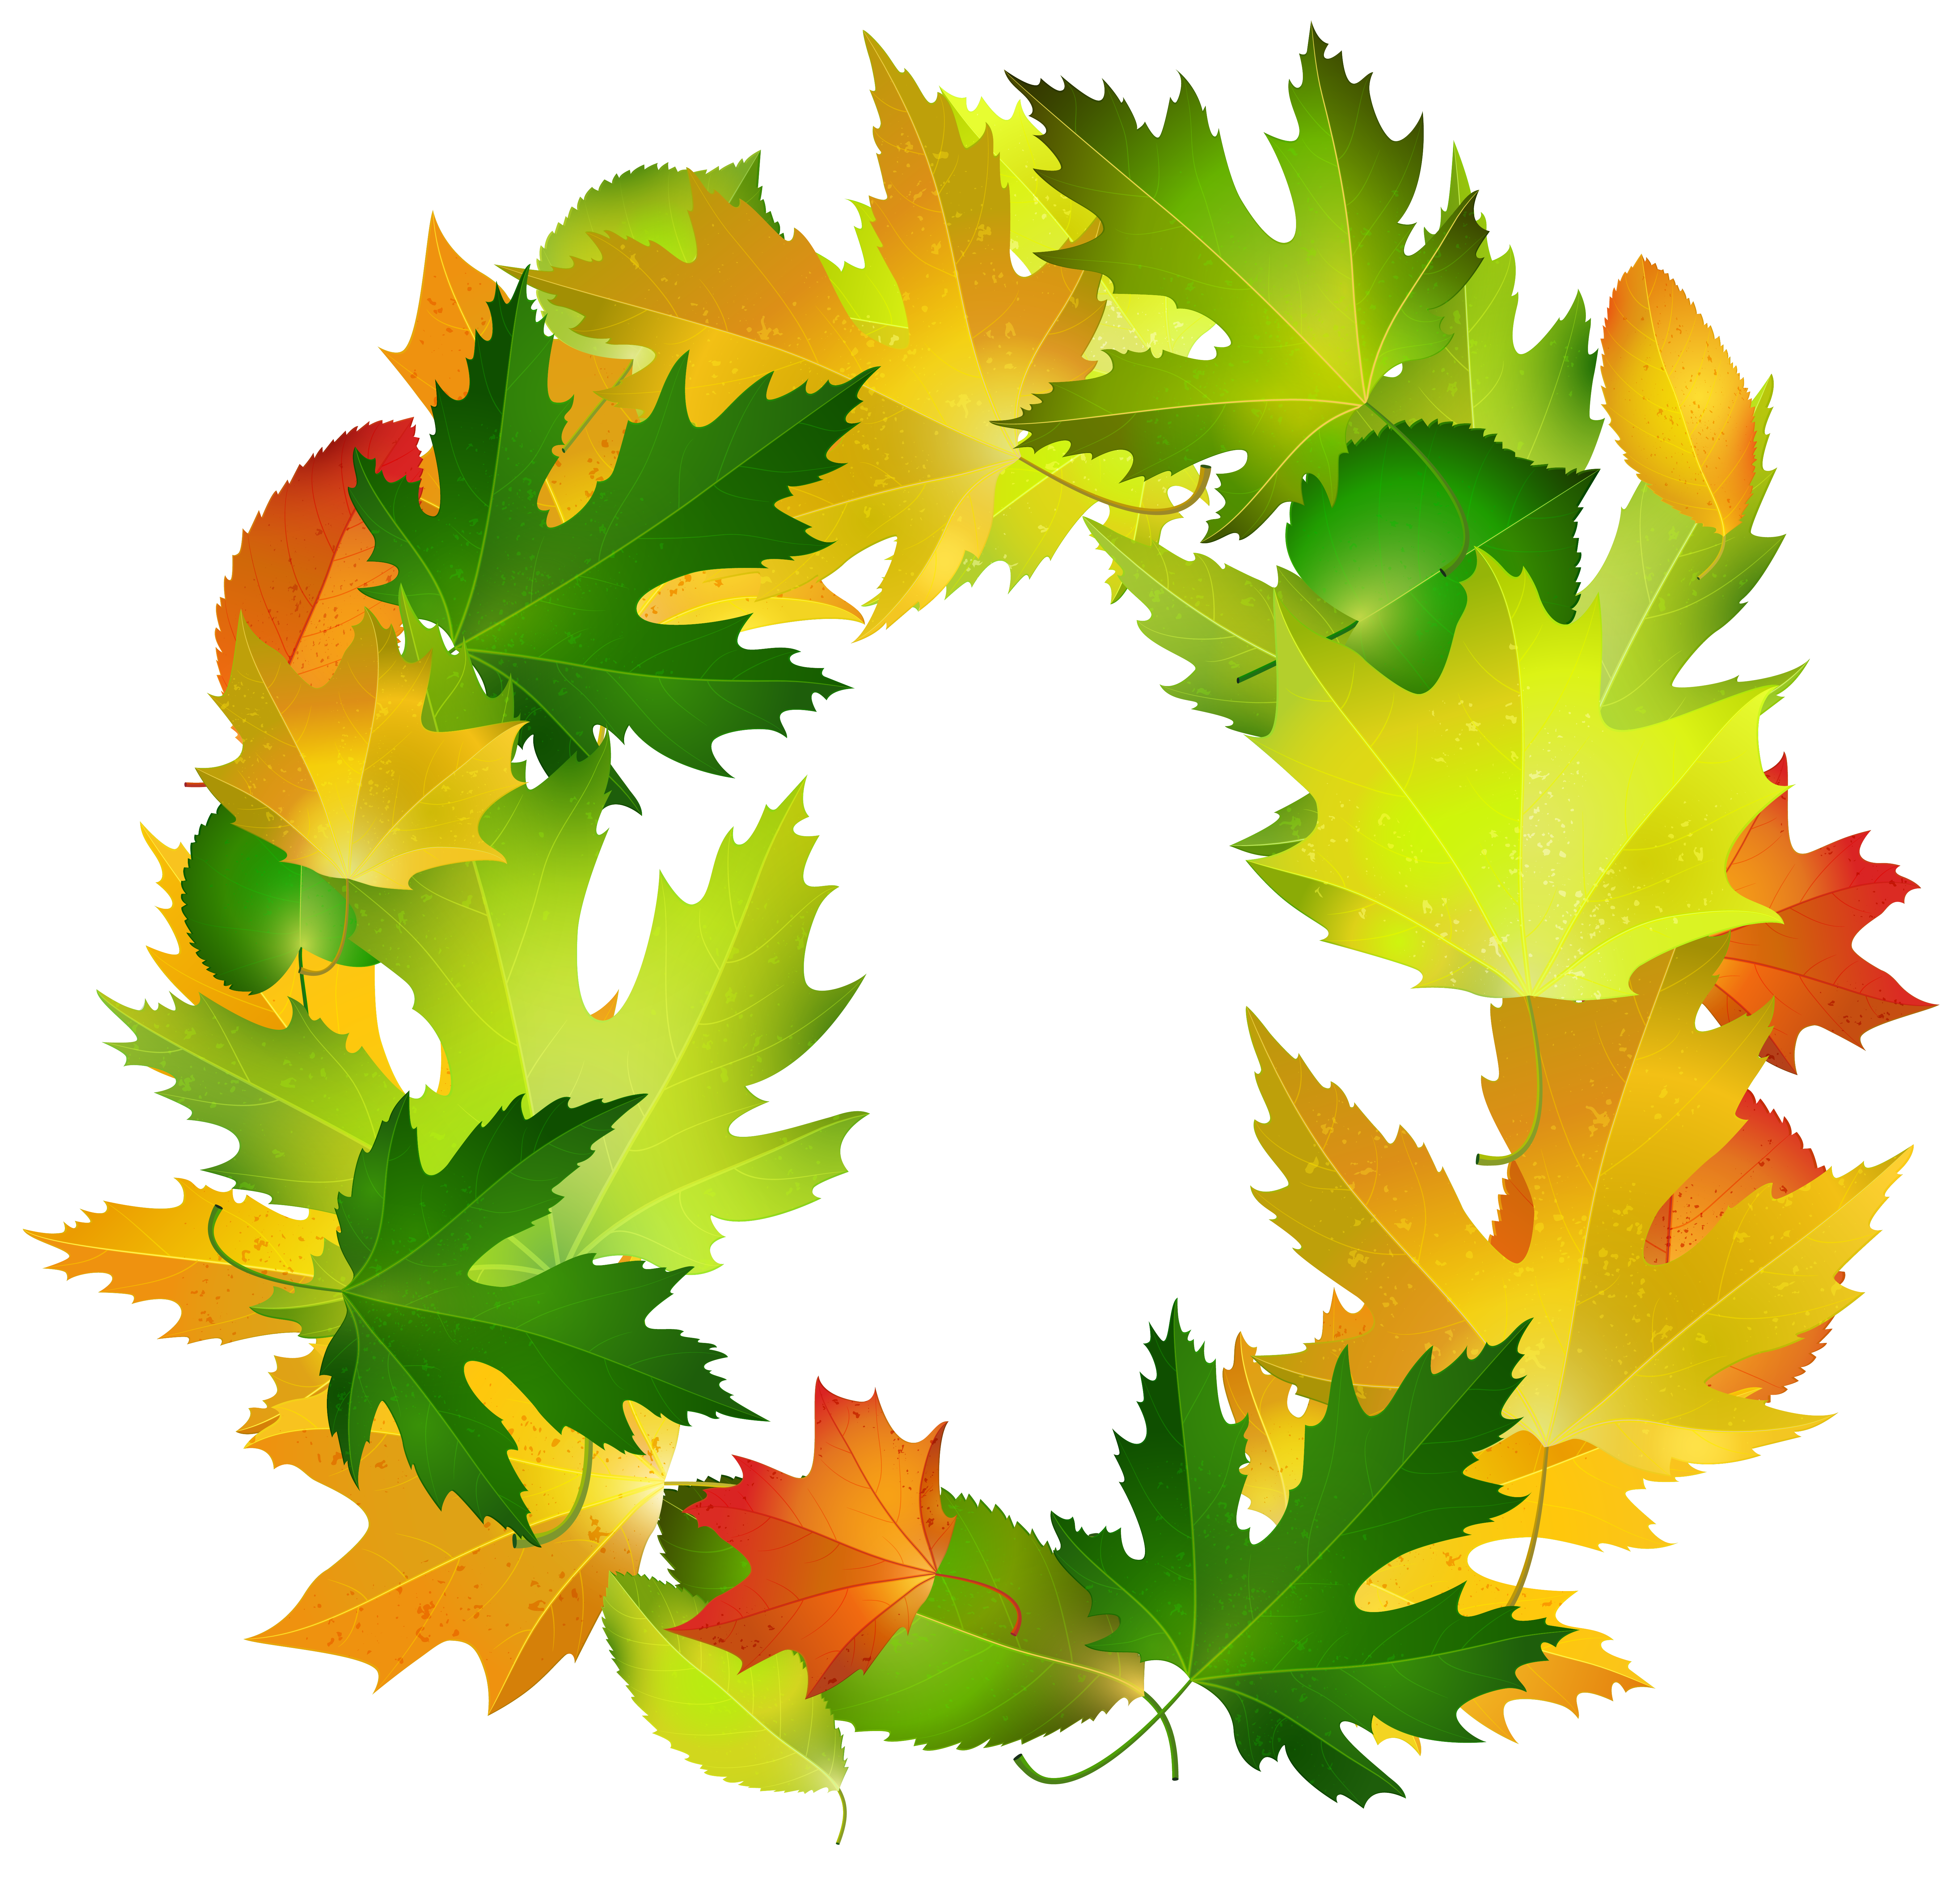 banner royalty free Leaves oval frame png. Fall leaf border clipart